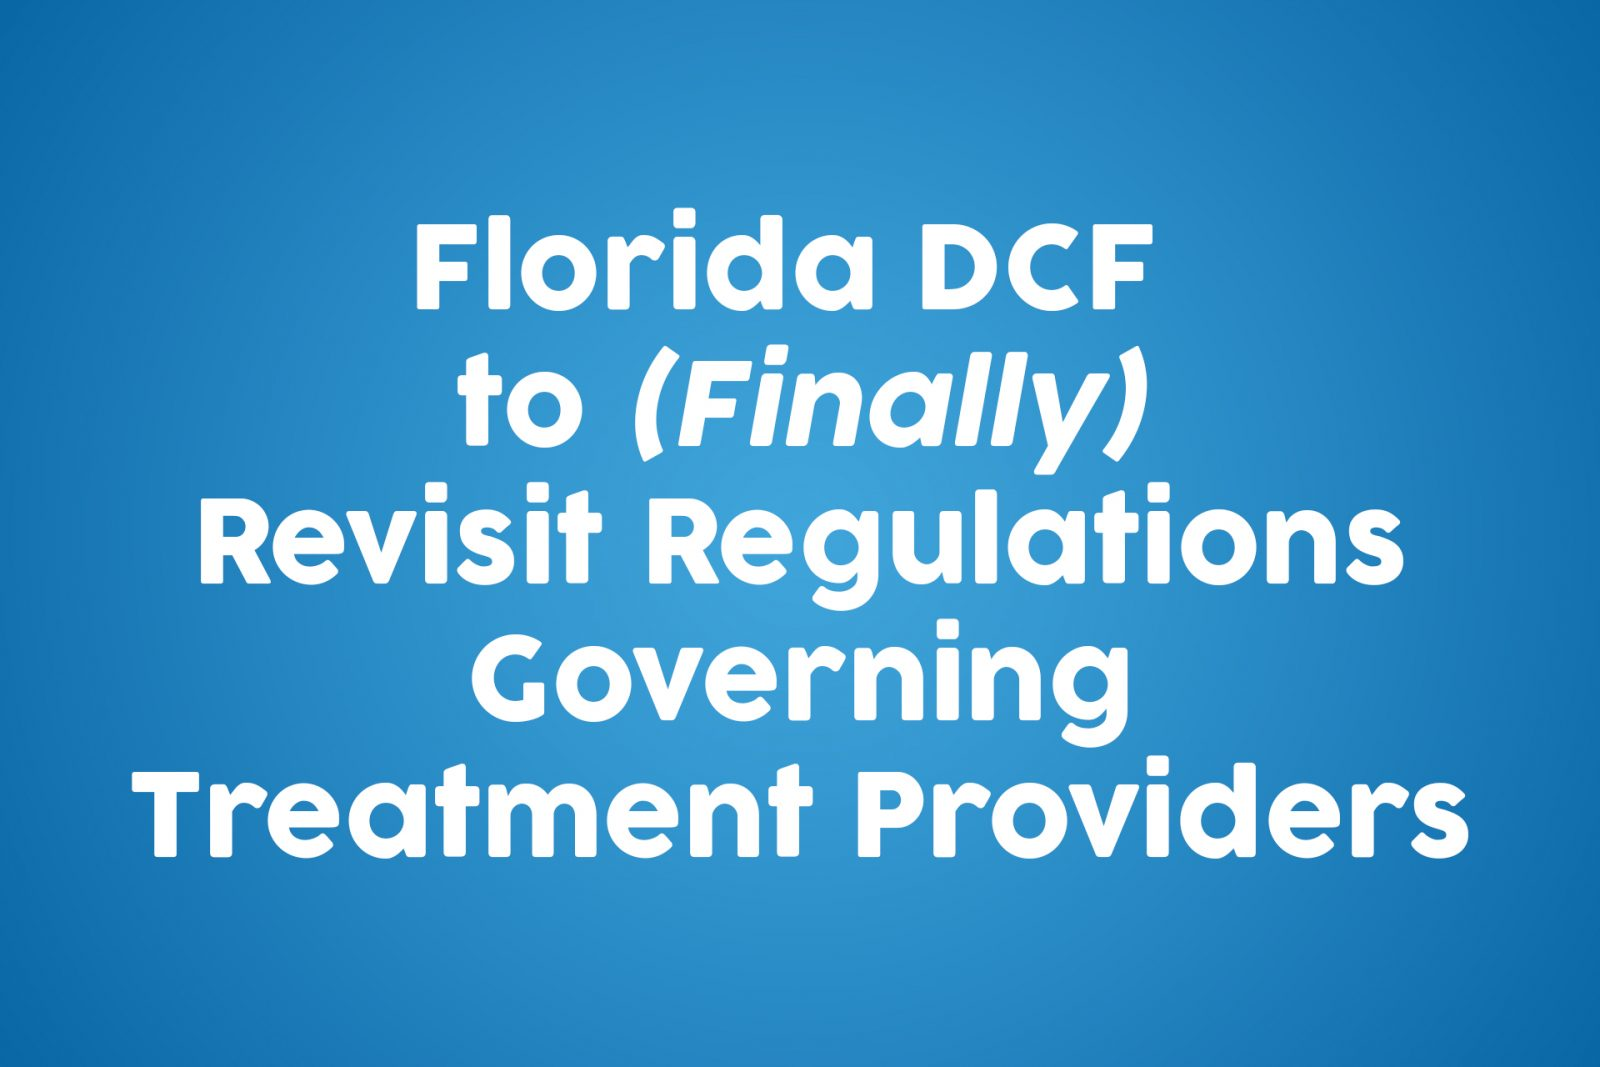 Florida DCF to (Finally) Revisit Regulations Governing Treatment Providers